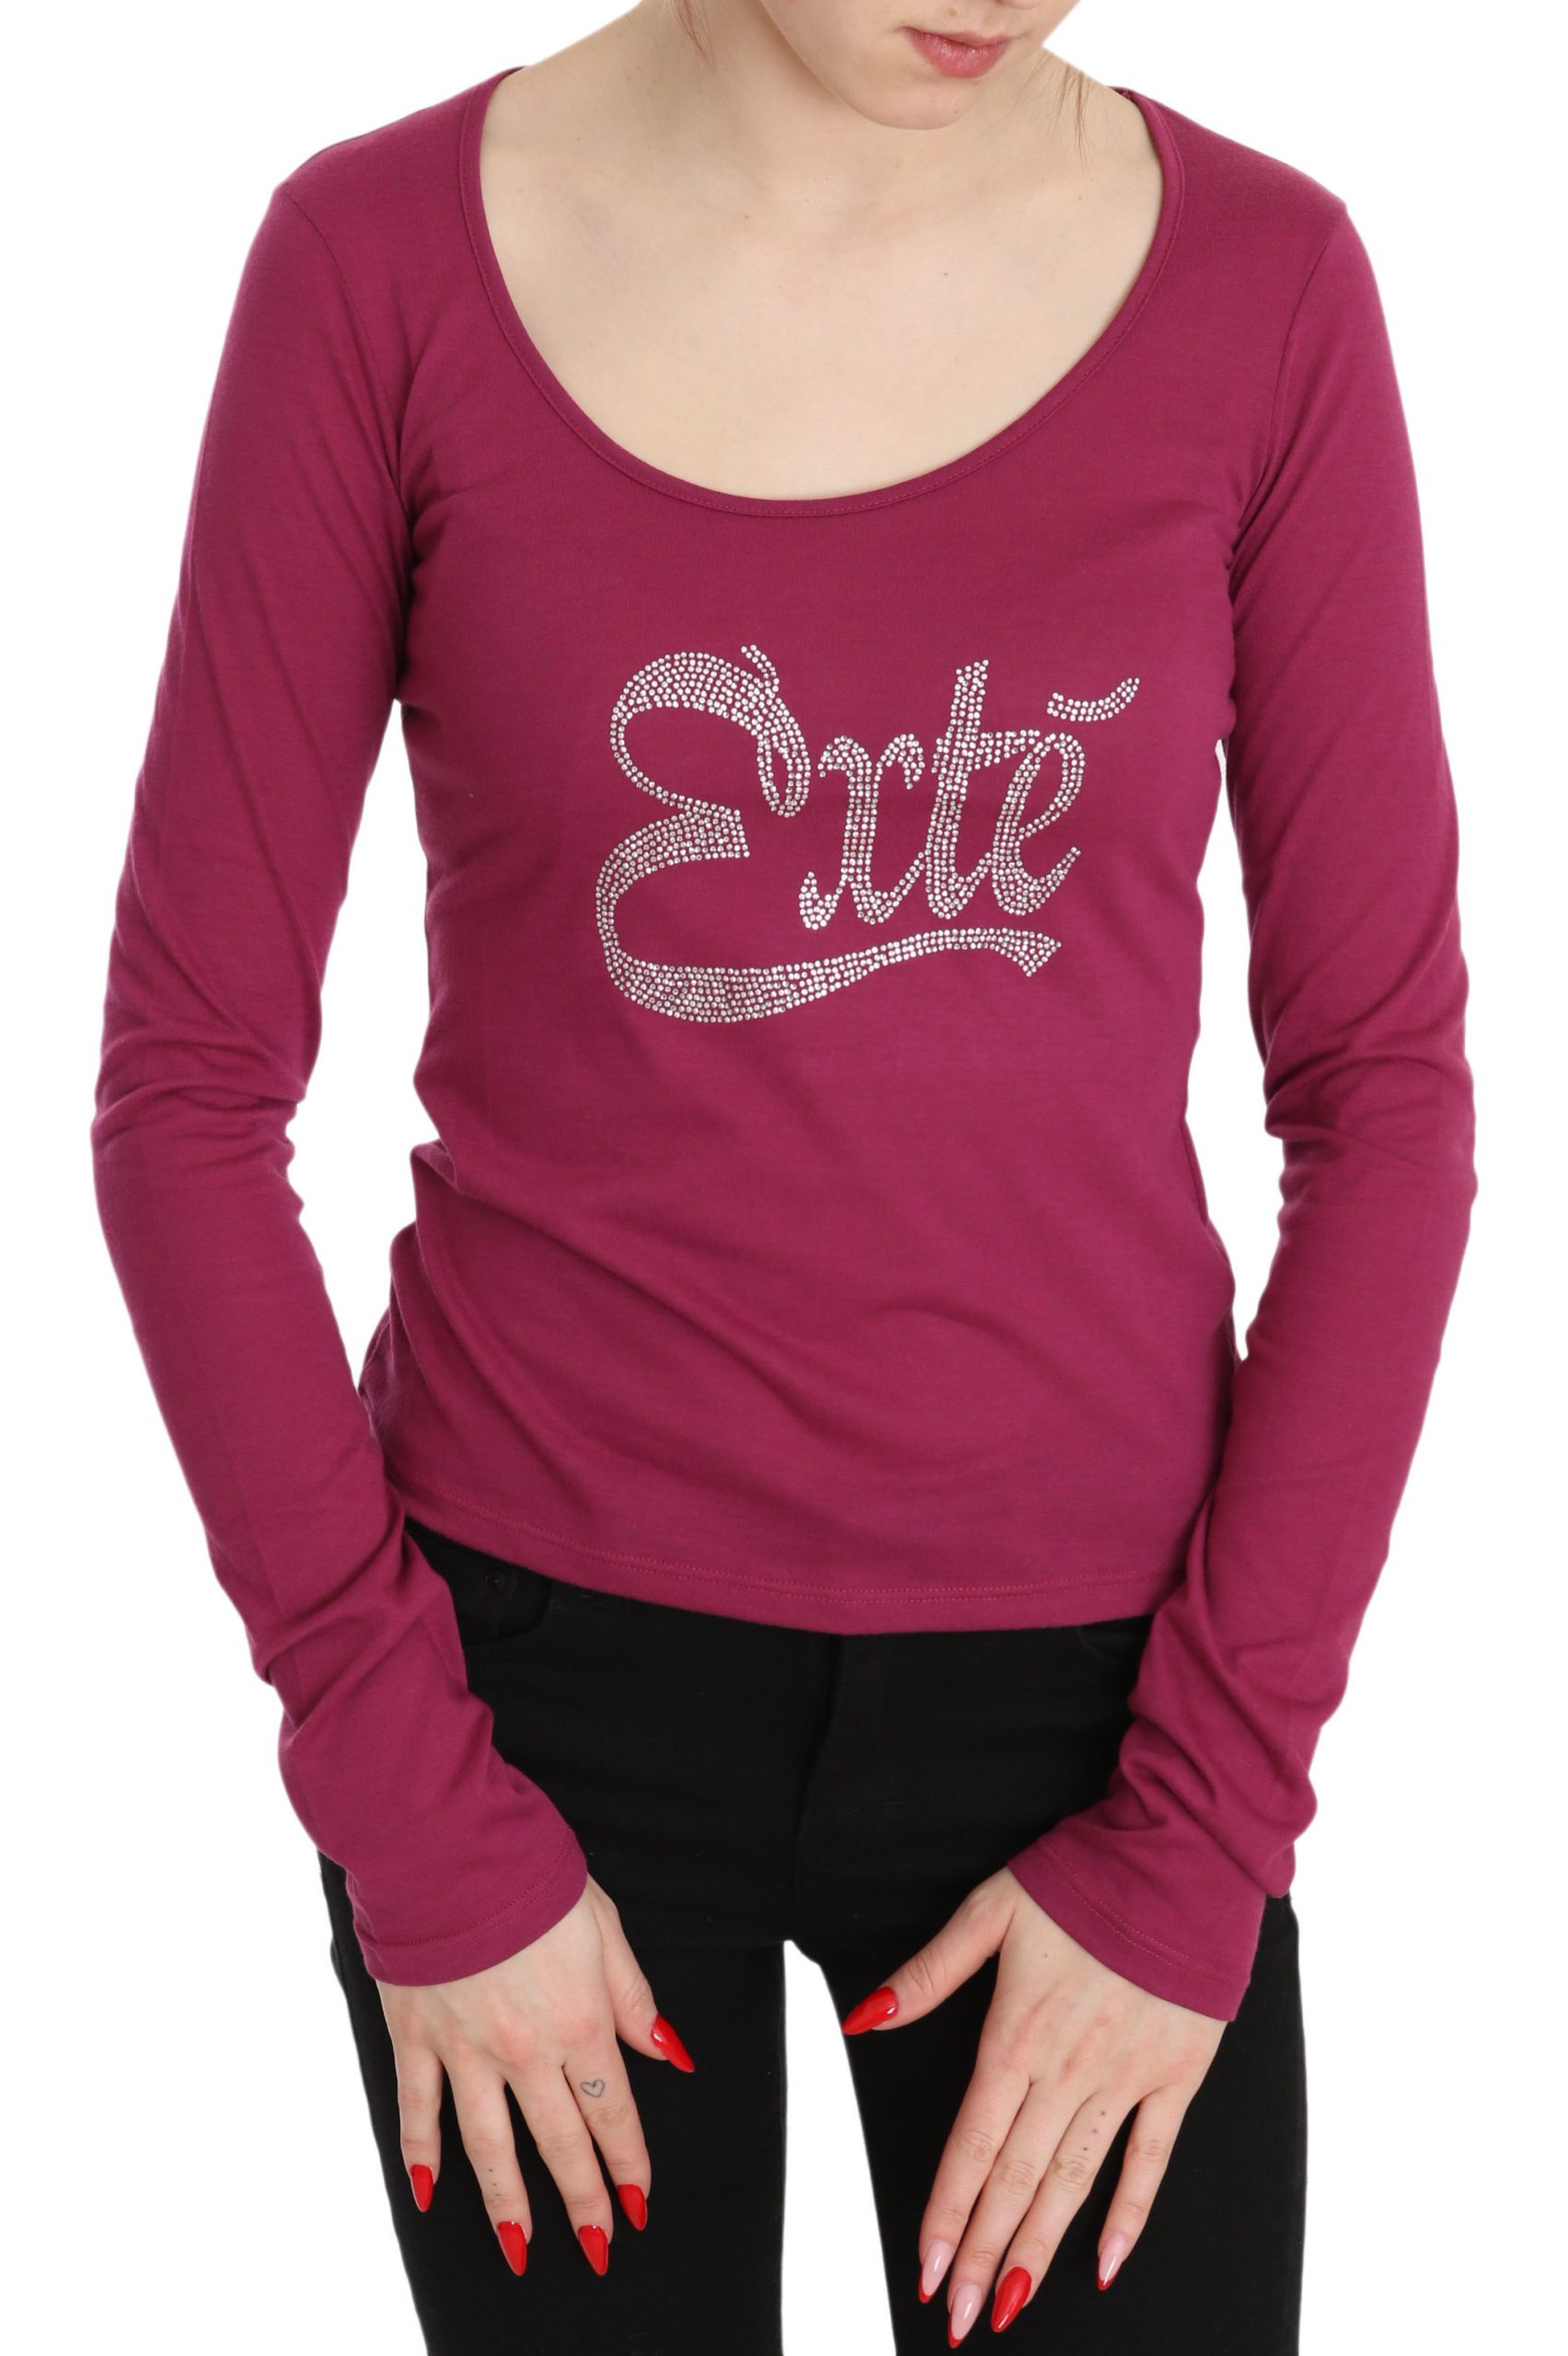 Exte Women's Exte Crystal Embellished LS Top Pink TSH3410 - IT40|S